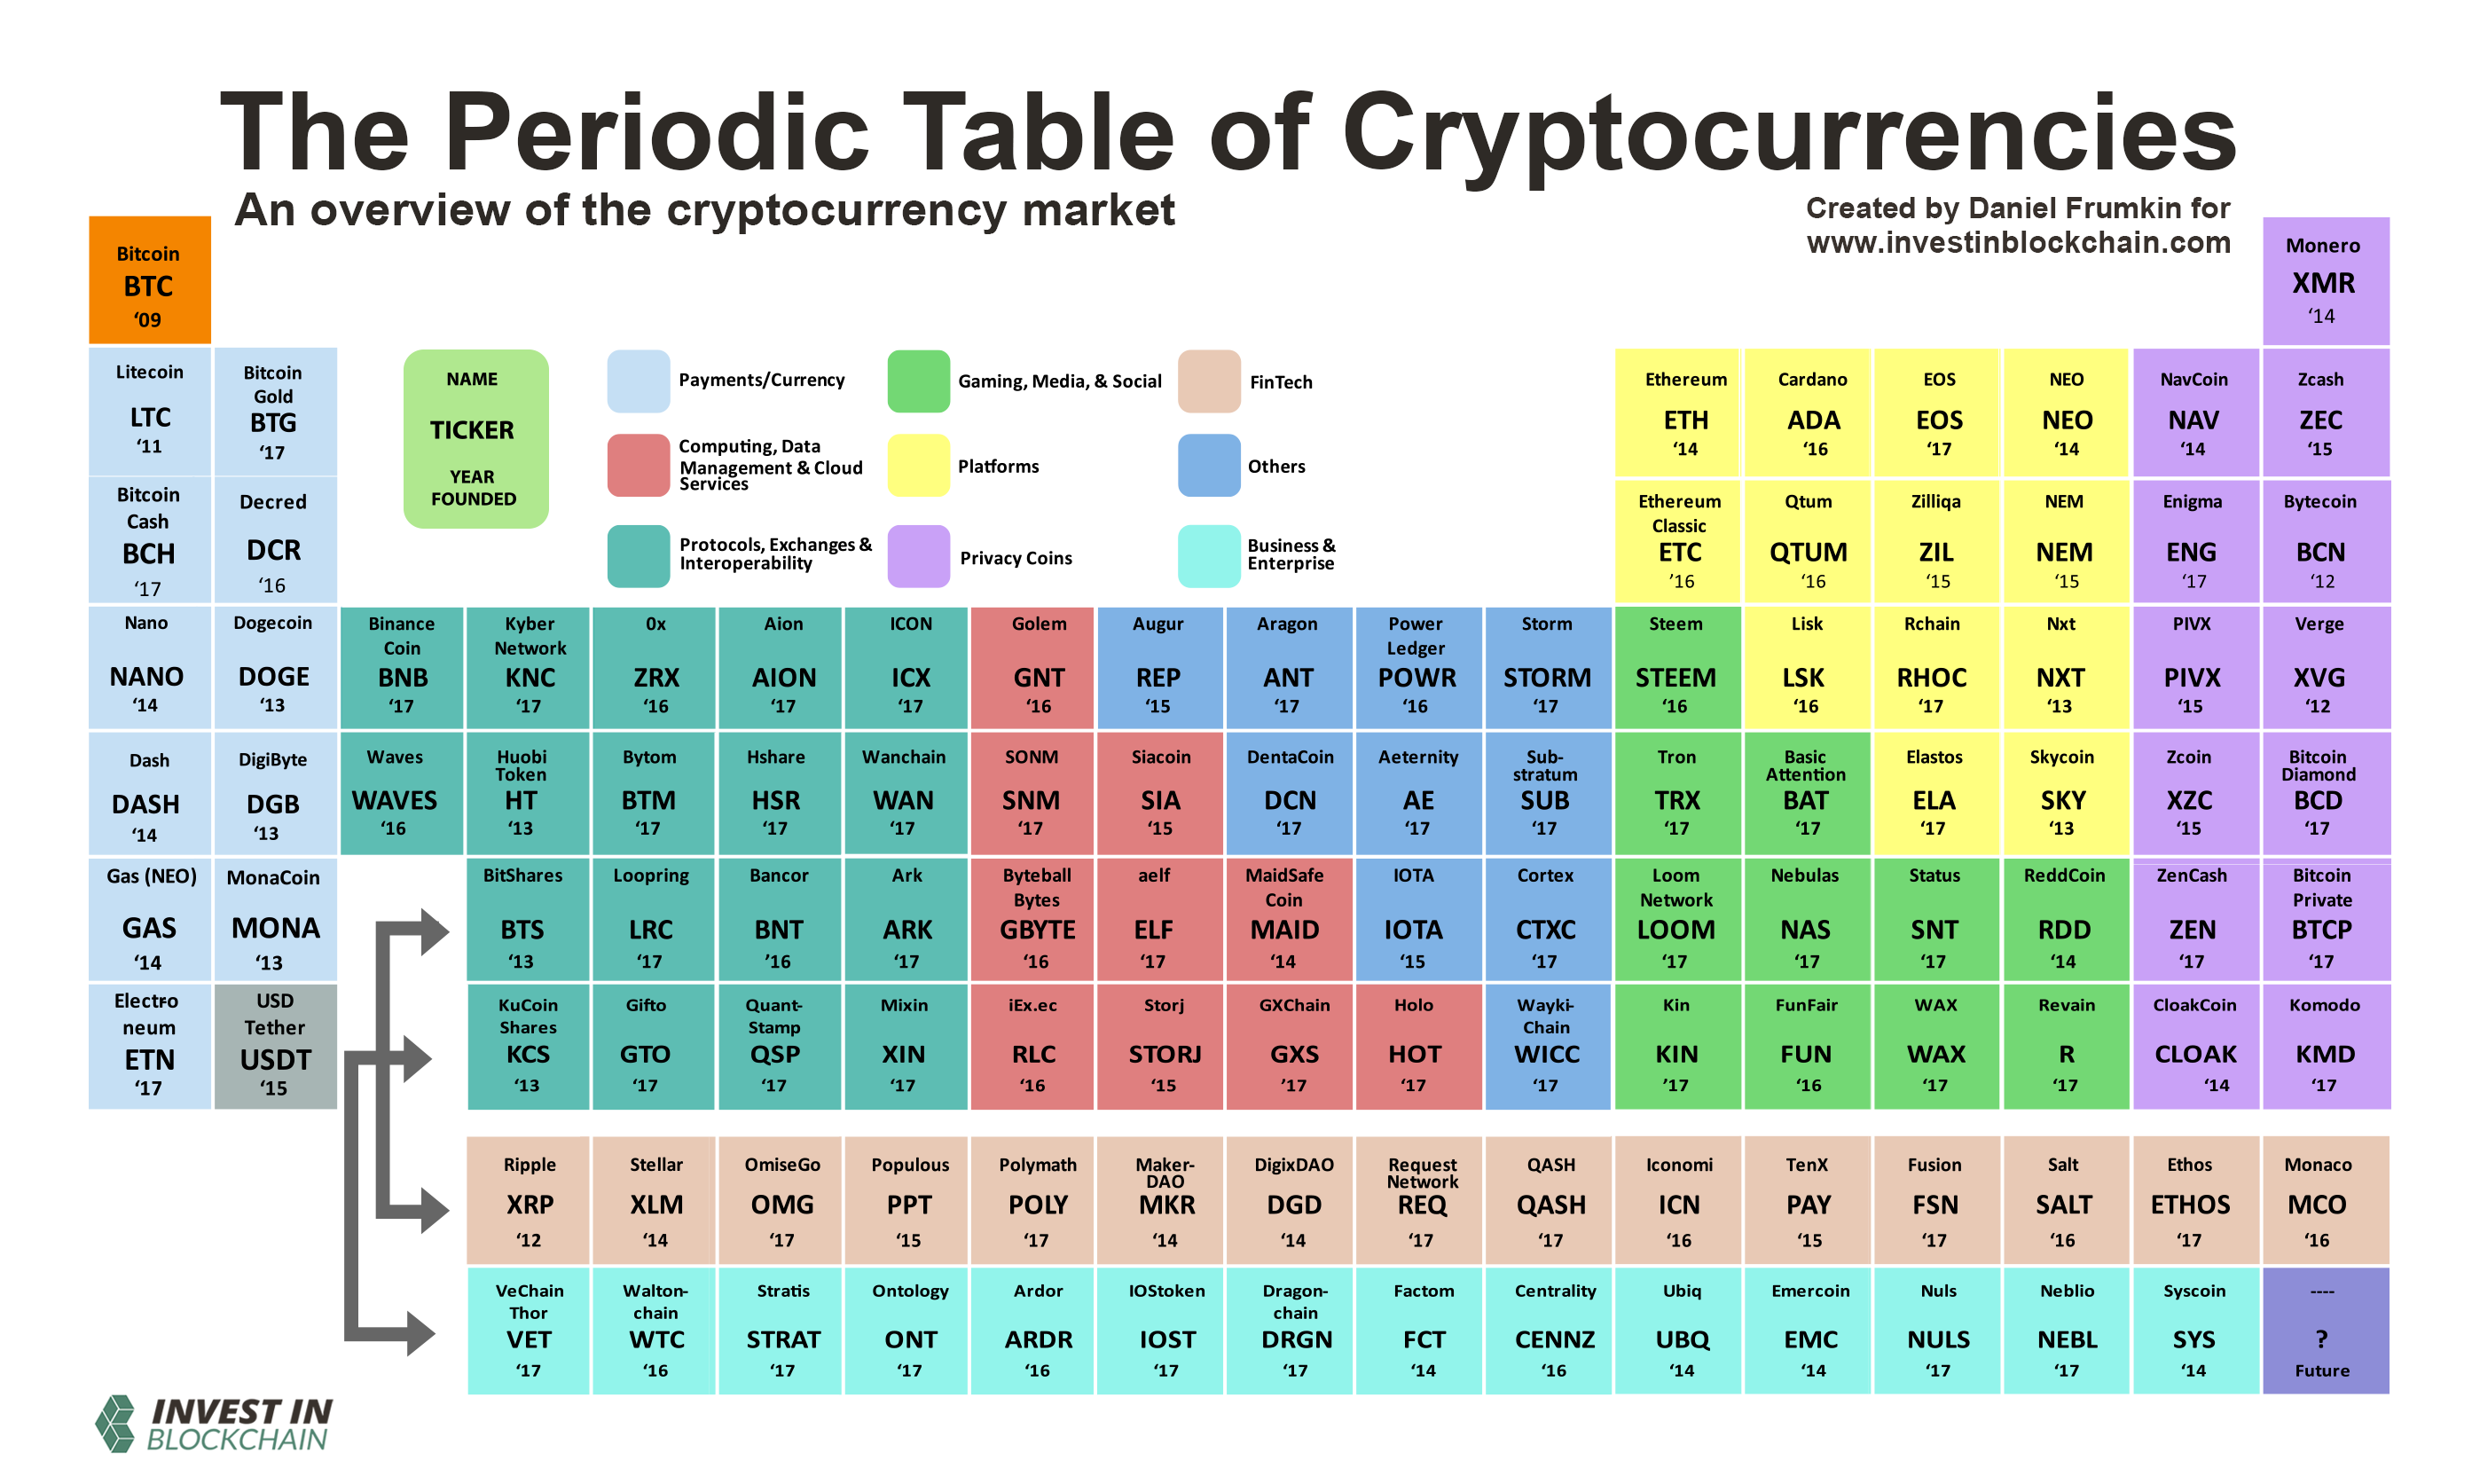 https://cdn.investinblockchain.com/wp-content/uploads/2018/06/periodic_table_cryptocurrencies.png?x90951